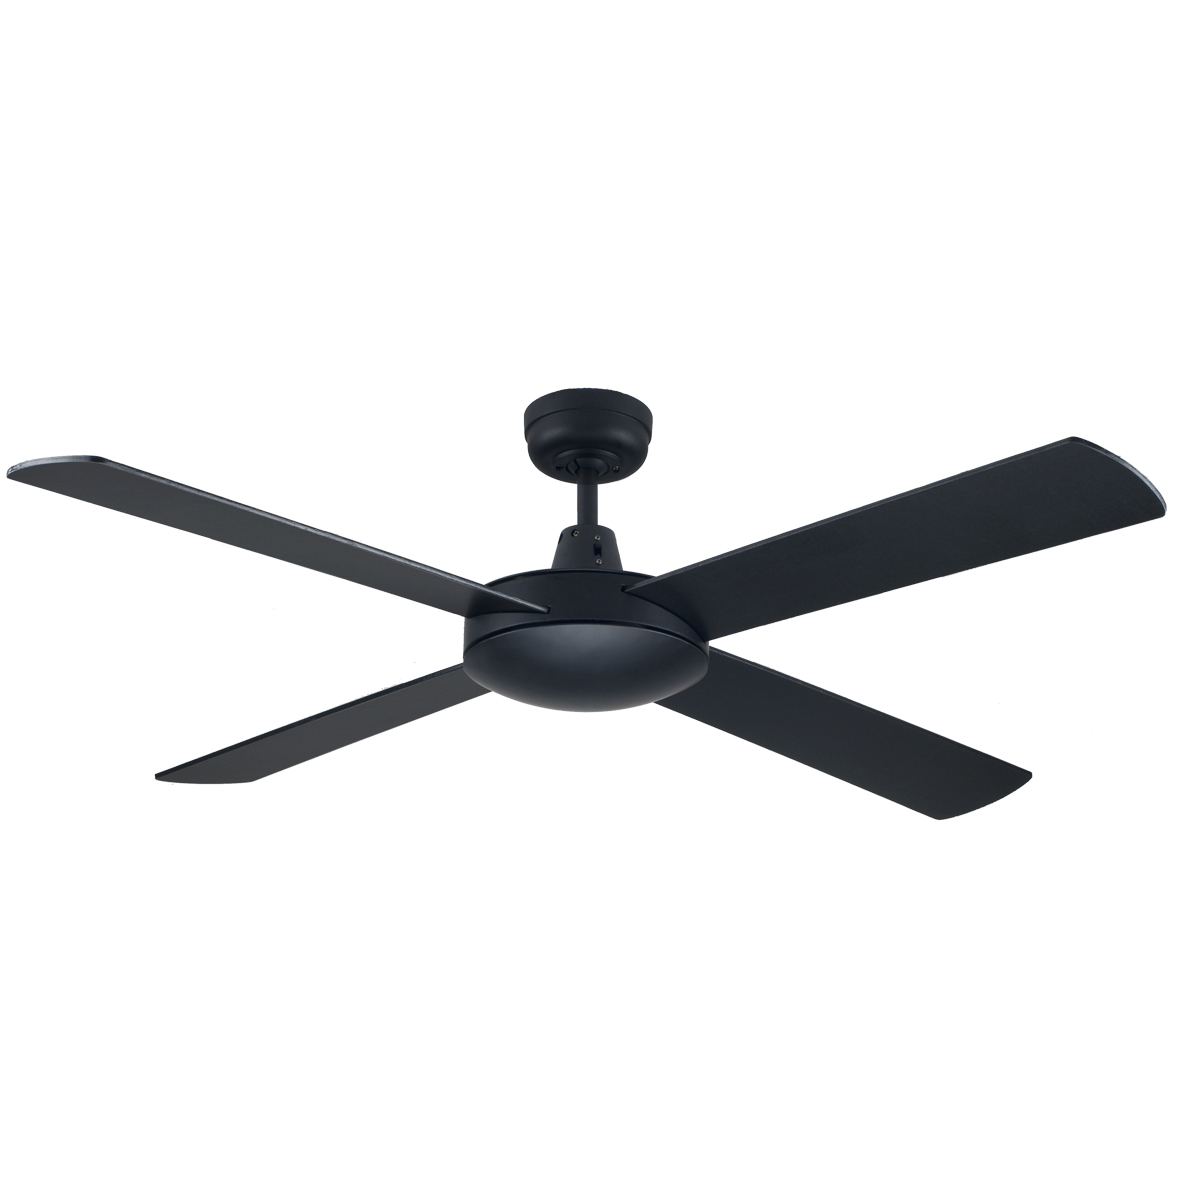 Outdoor Modern Fans Modern Outdoor Ceiling Fans With Lights Taraba Home Review